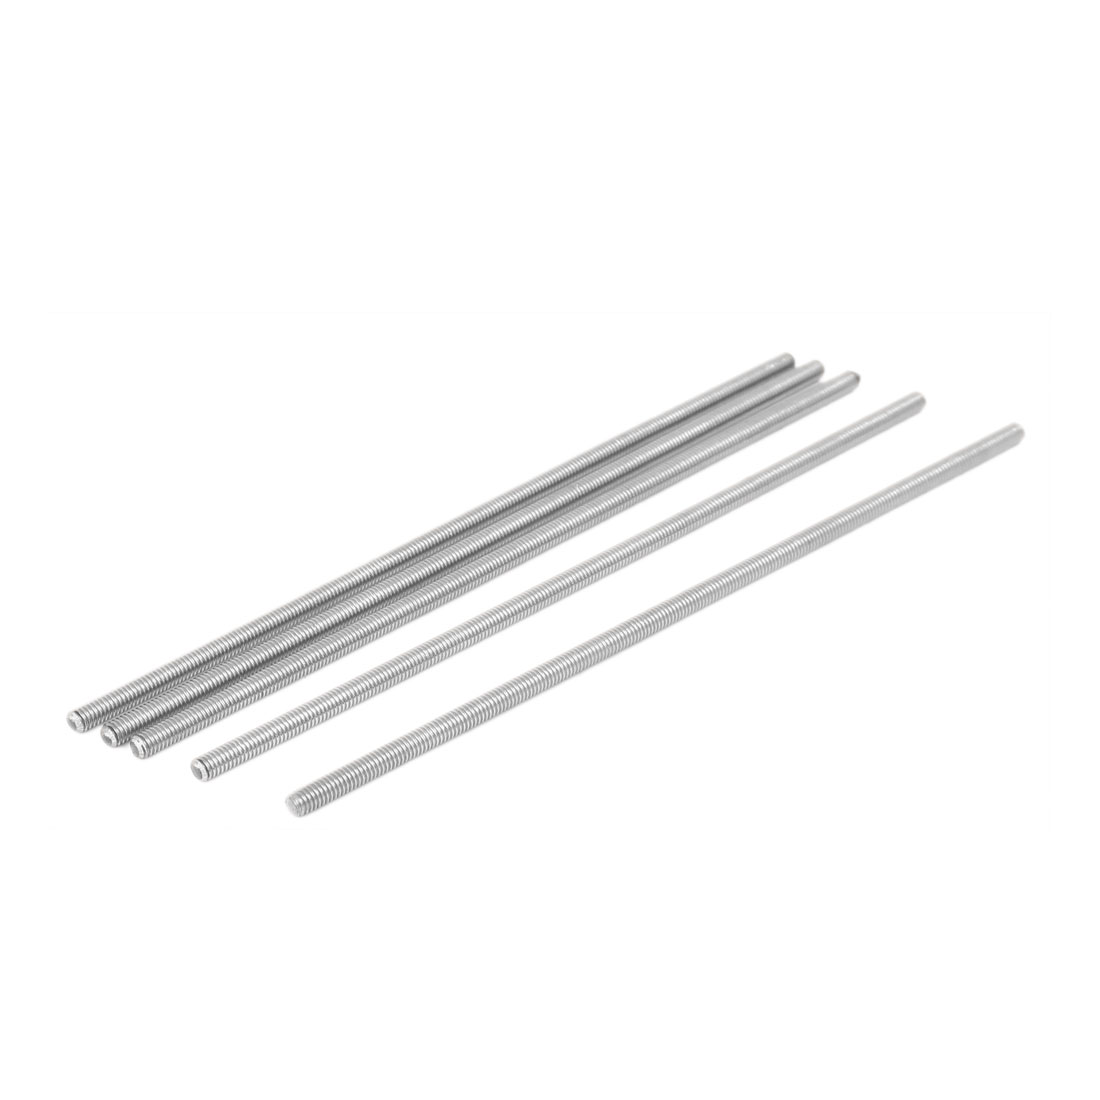 UXCELL 5Pcs M4 X 150mm 304 Stainless Steel Fully Threaded Rod Bar Studs Silver Tone Bolts Fasteners Hardware Home Improvement